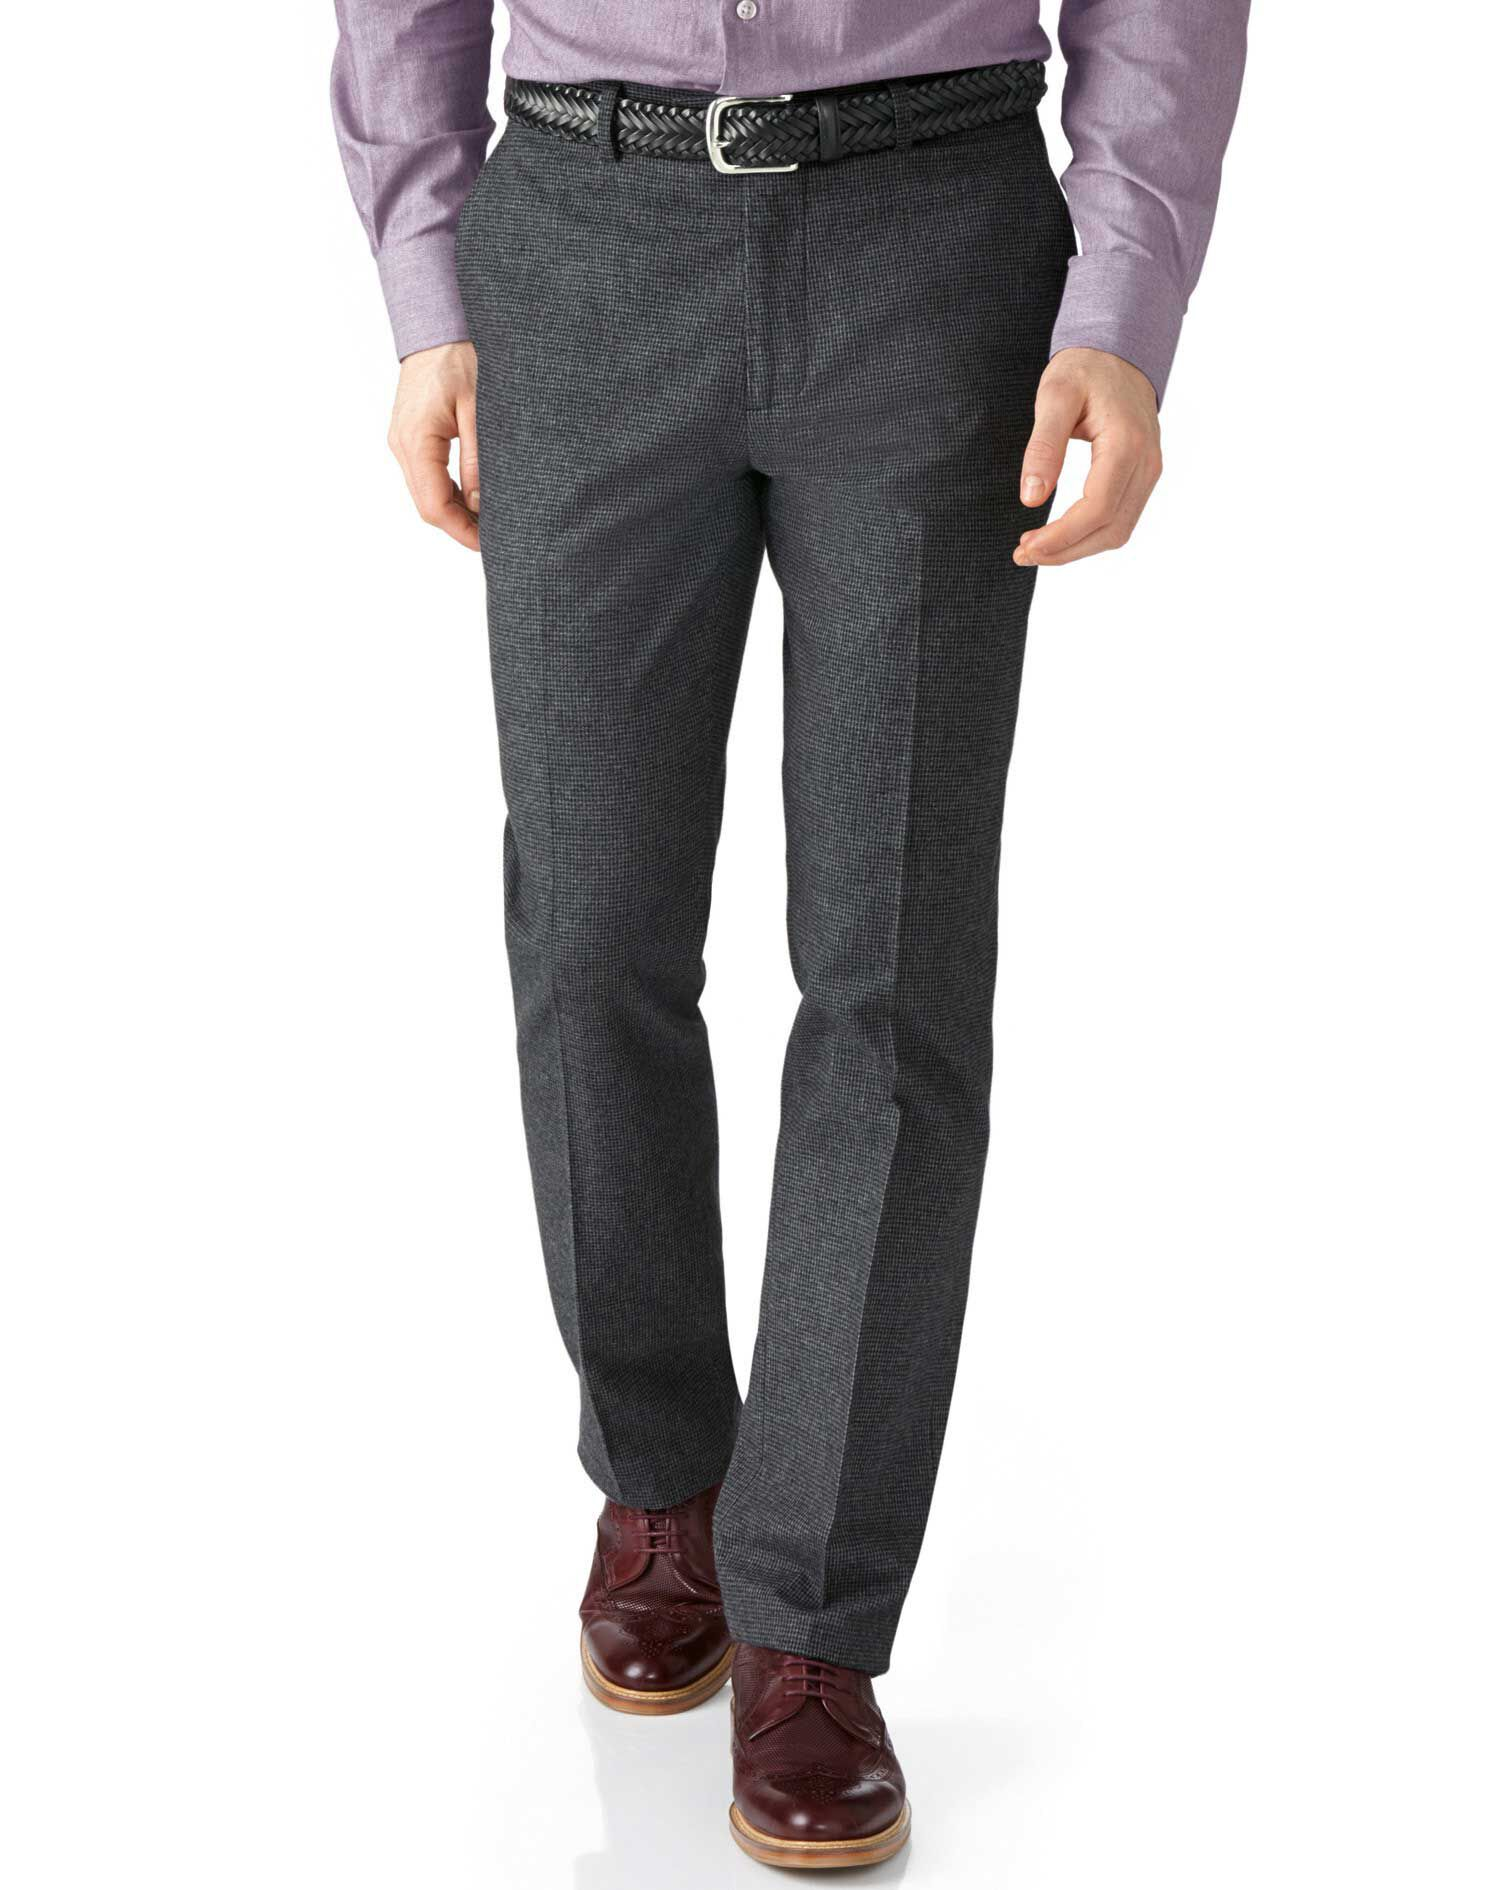 Grey Slim Fit Cotton Flannel Trouser Size W32 L34 by Charles Tyrwhitt